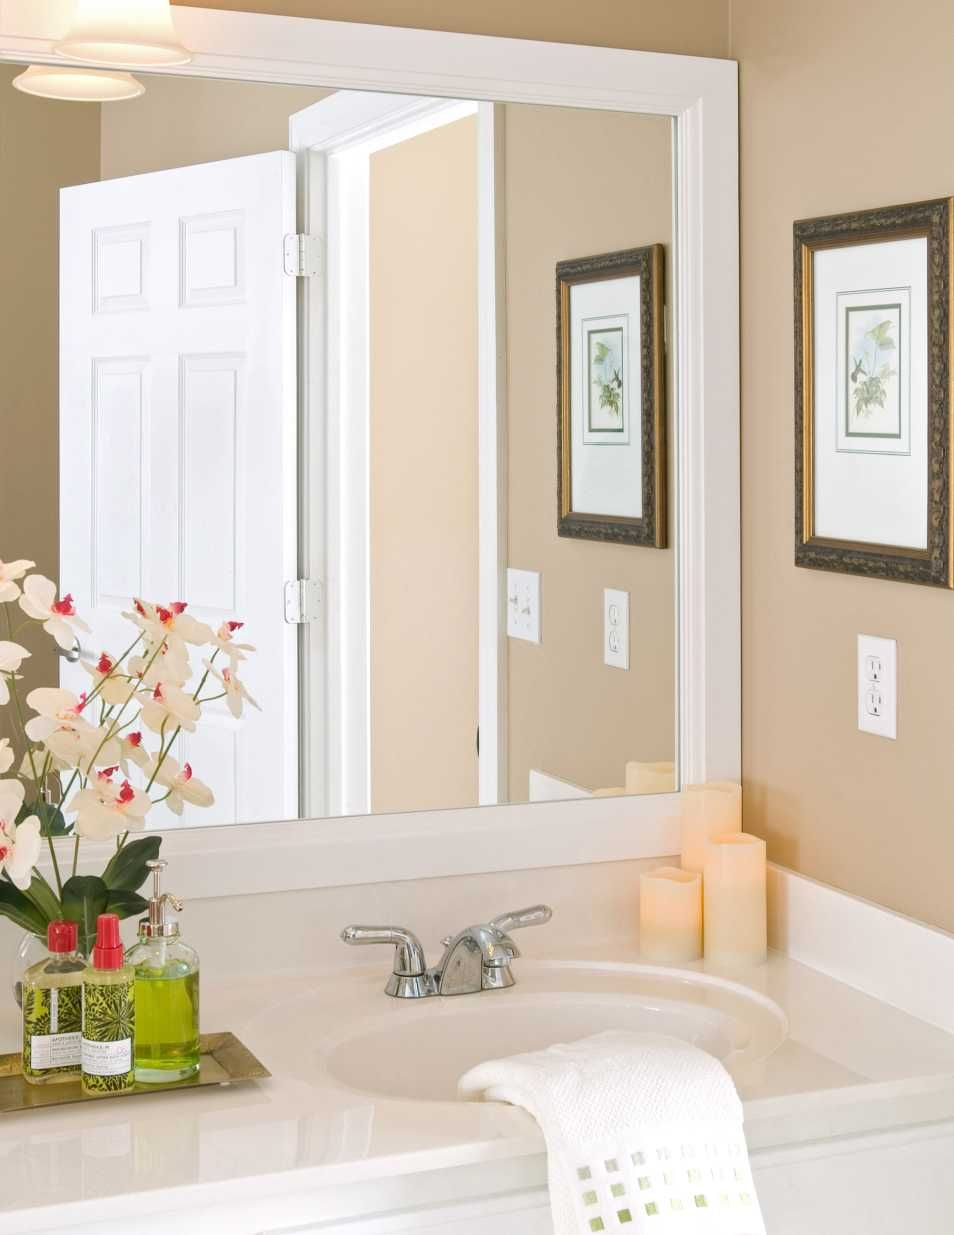 Bathroom bathroom mirror frame white make the mirror glass stronger hang in wall give little light to shine the mirror adding flower near sink increase